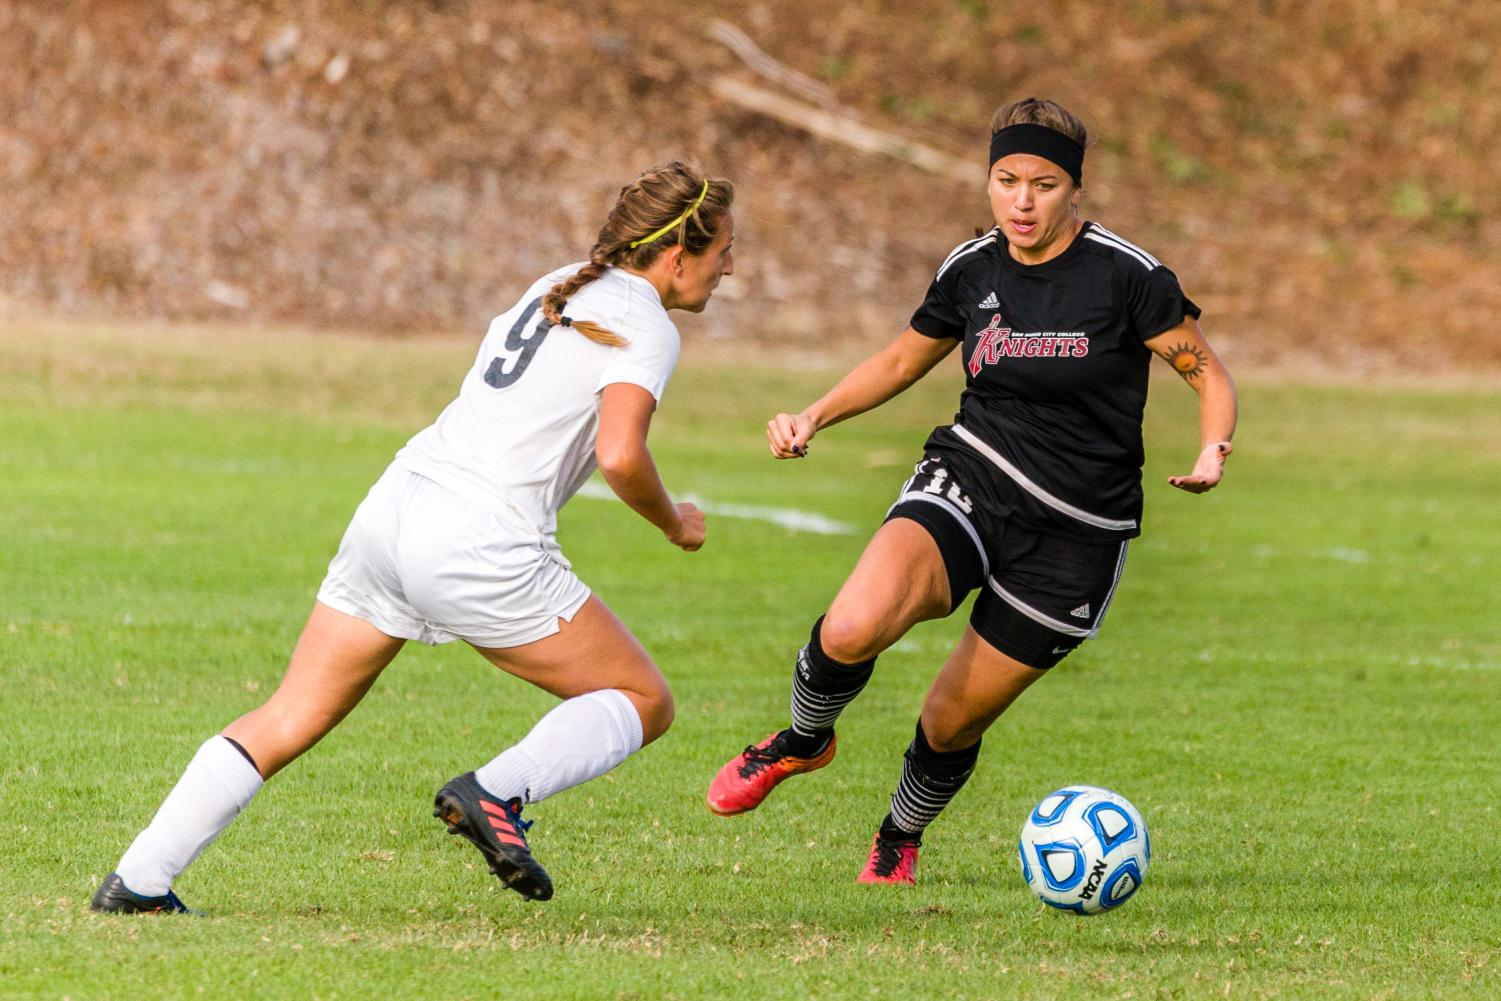 Knights defender, Giulianna Orlandoni, clears the danger against Sam Smith of the Miramar Jets, Oct. 20.